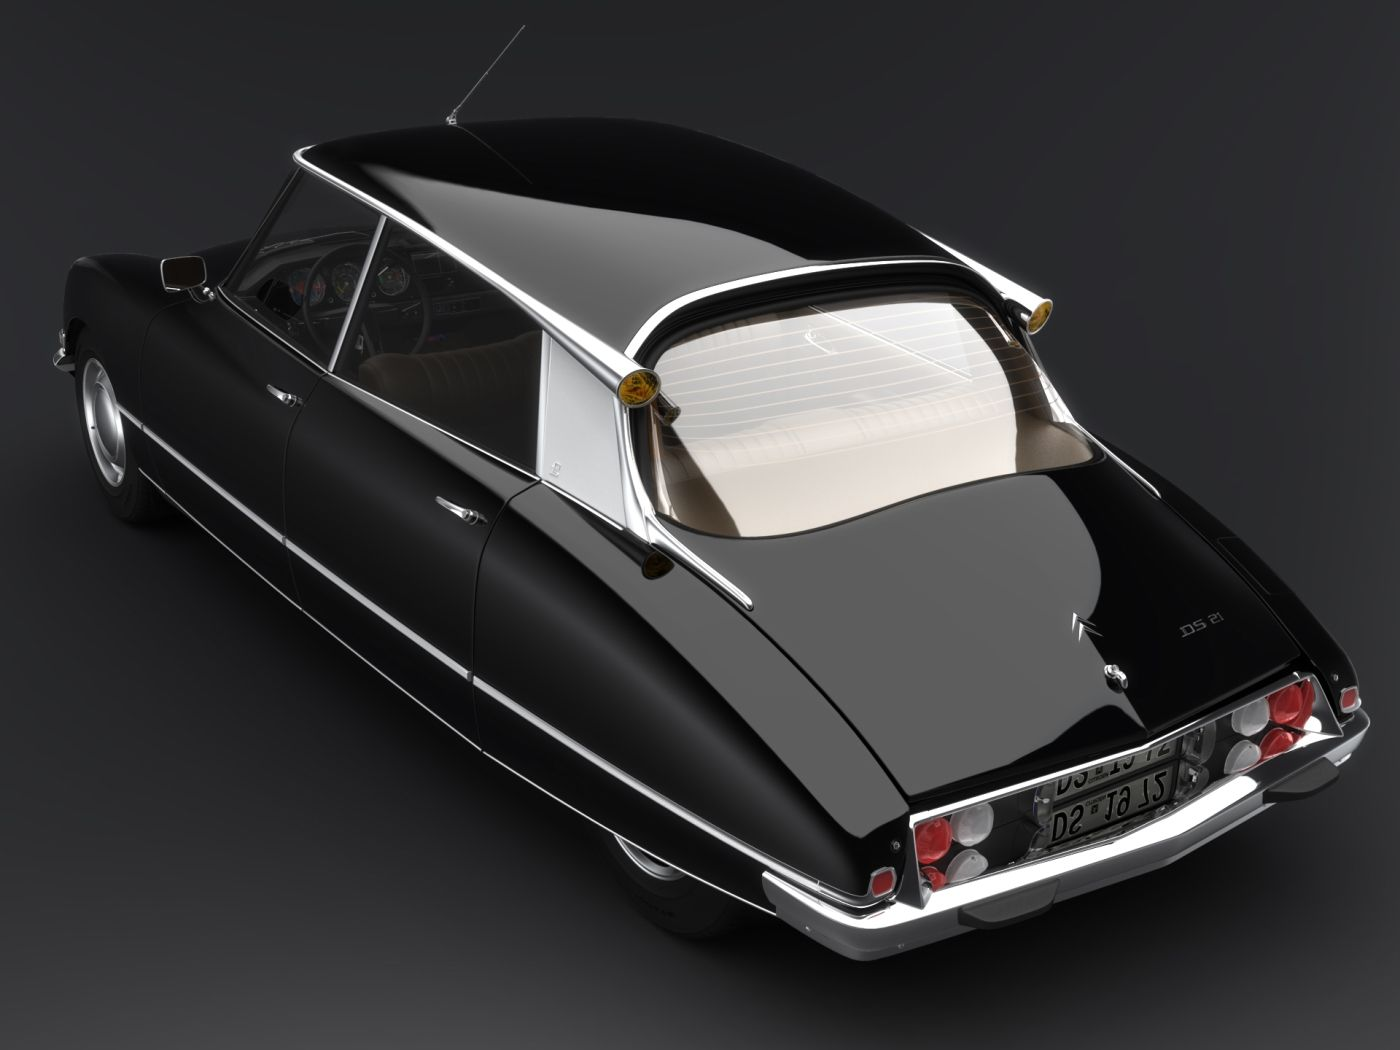 105 best citroen images on pinterest citroen ds car and vintage citroen ds introduced in 1955 the ds pushed the envelope in every aspect of vanachro Choice Image